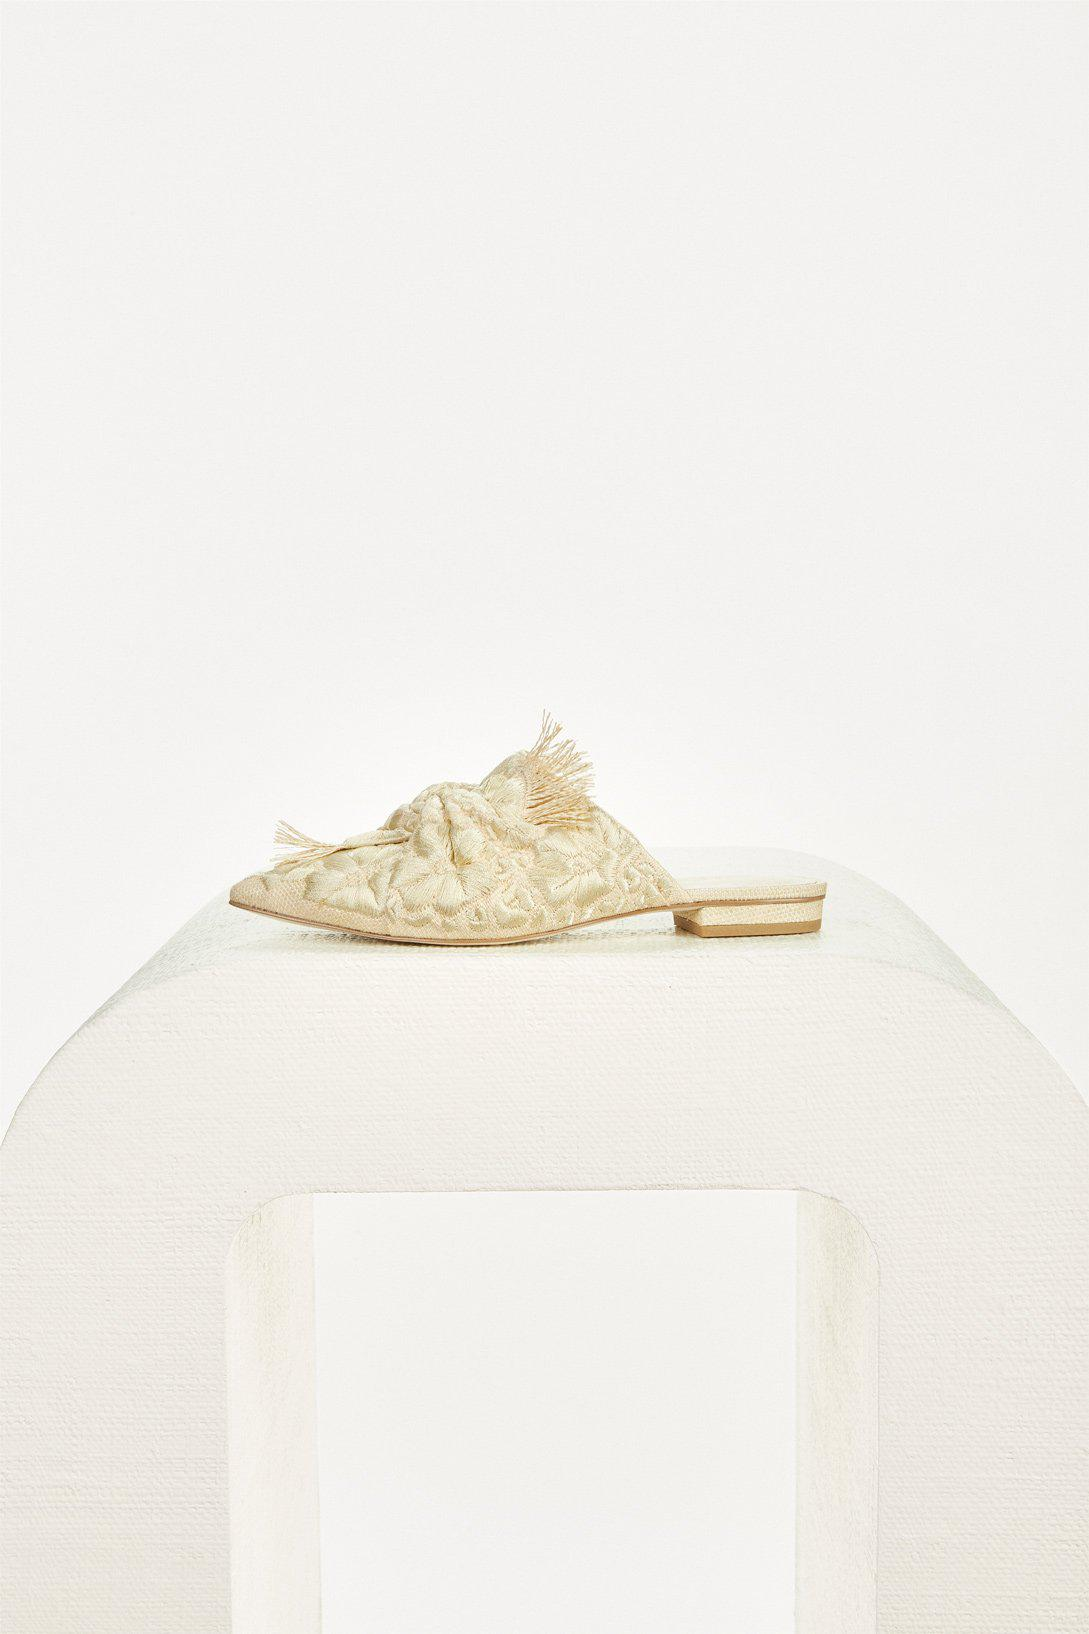 ANGIE FLAT - NATURAL EMBROIDERED